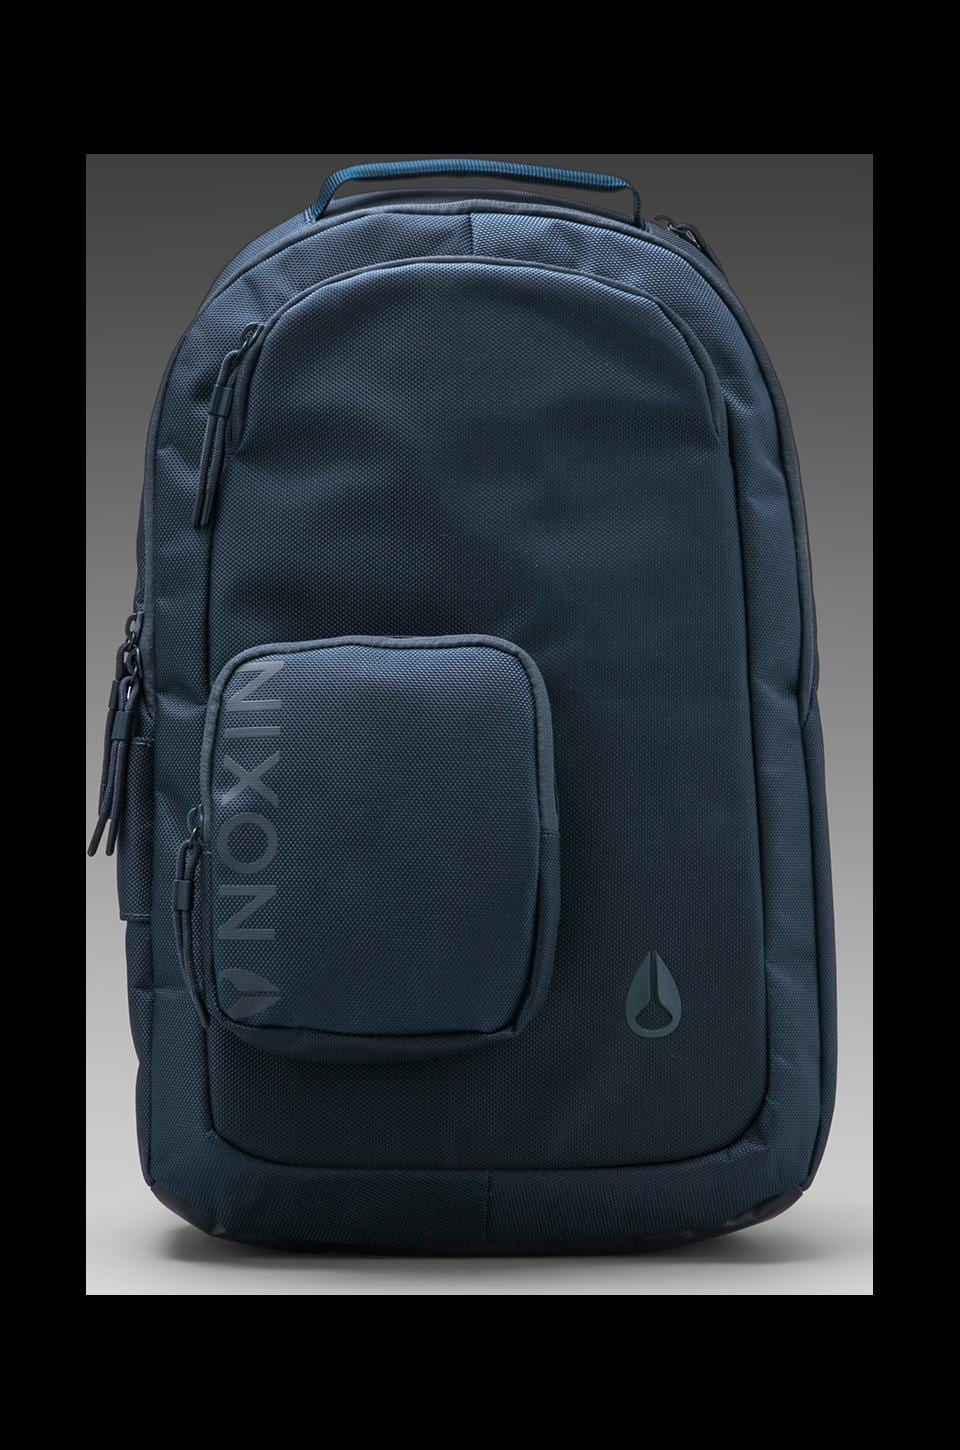 Nixon Small Shadow Backpack in Steel Blue